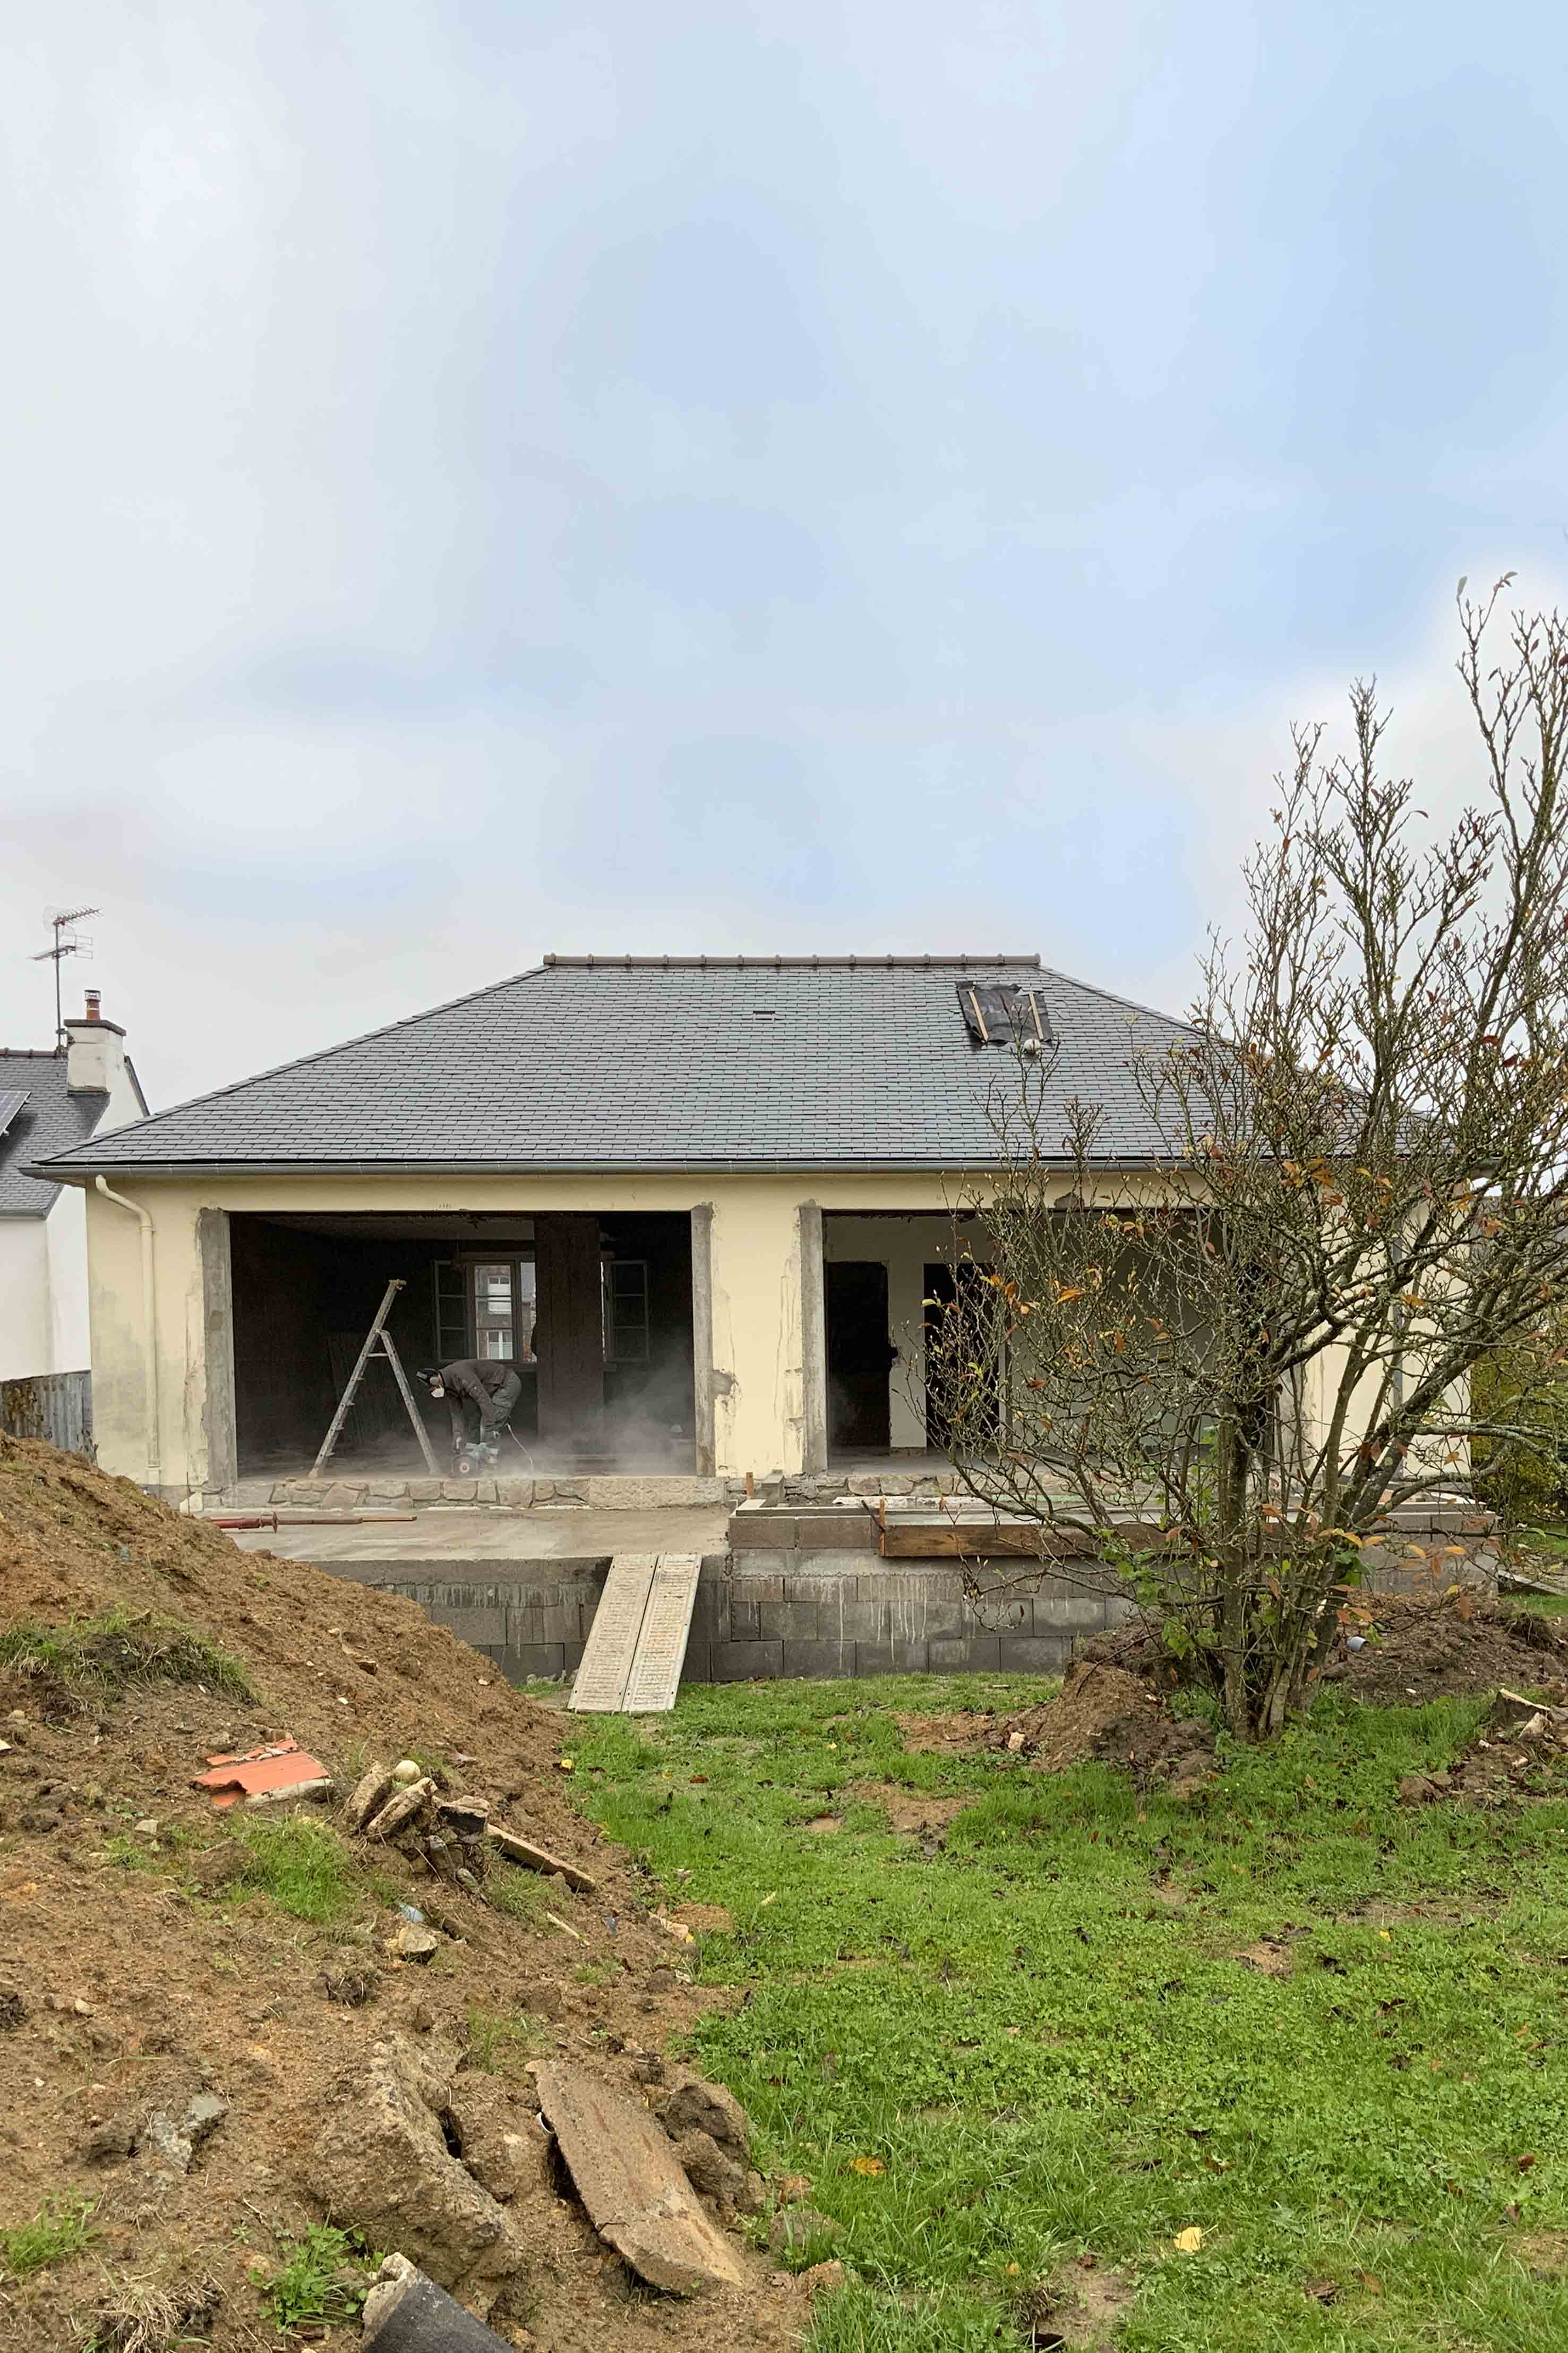 extension d'une maison (en chantier)